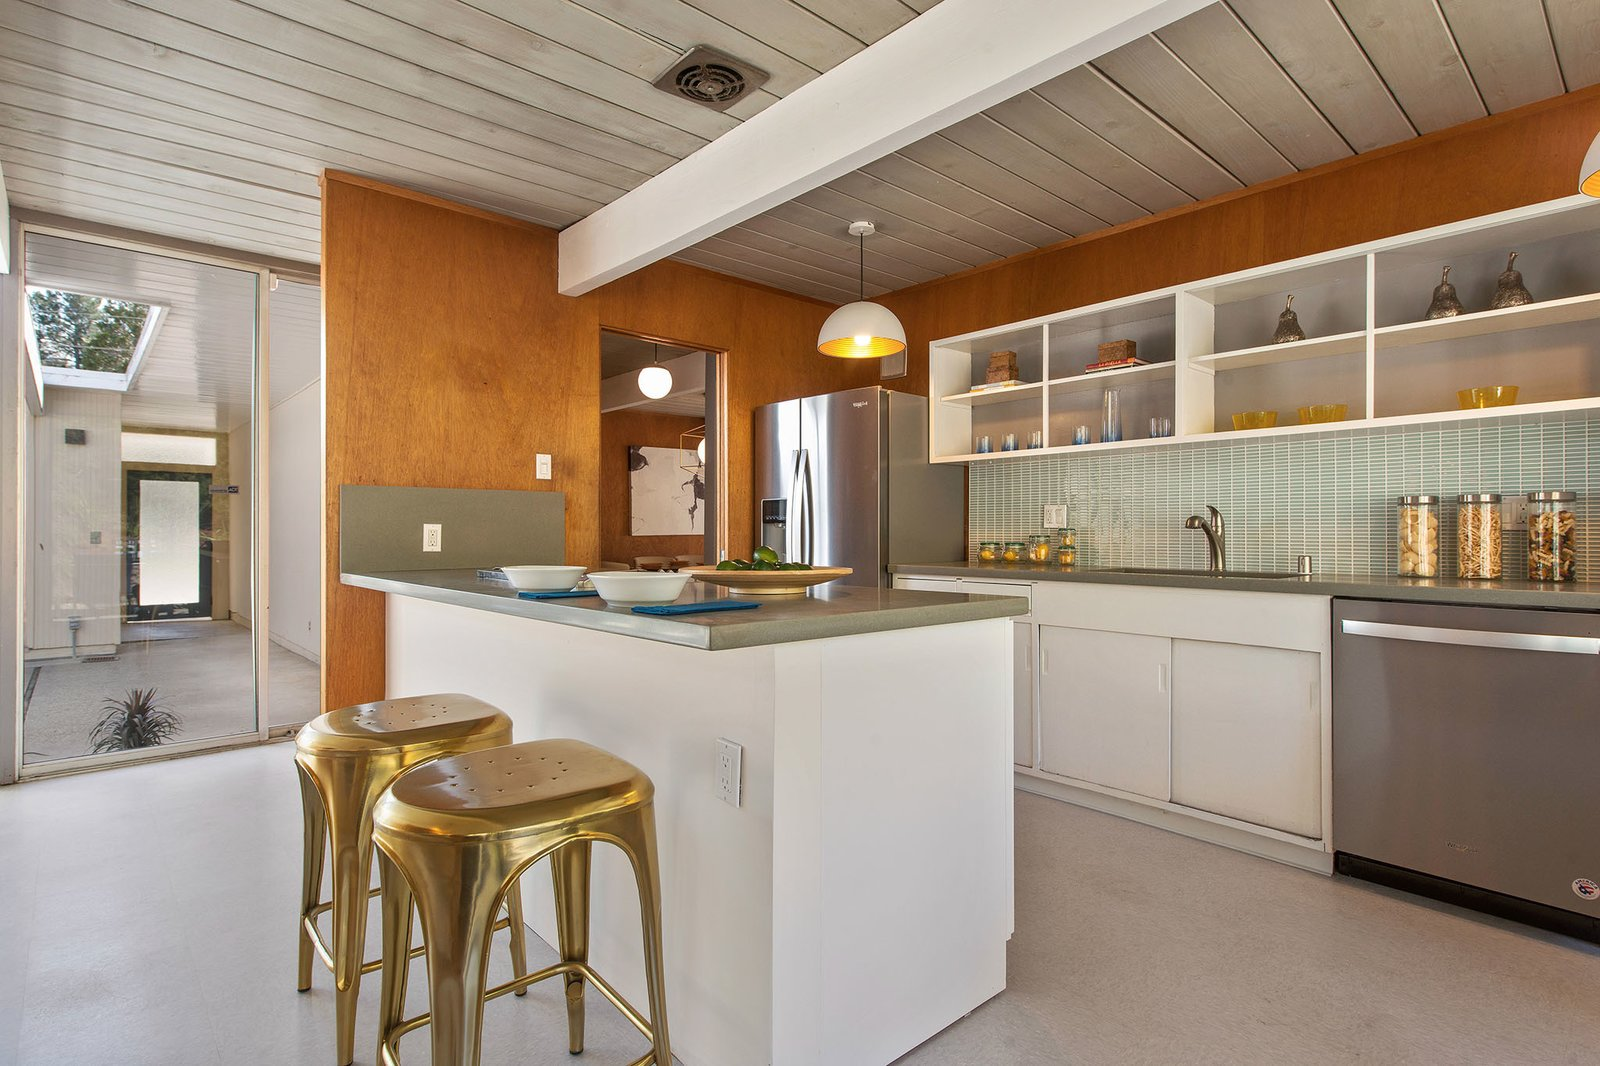 Kitchen, White, Drop In, Pendant, Dishwasher, Refrigerator, and Glass Tile The kitchen.  Best Kitchen Glass Tile Dishwasher Photos from An Elegant Eichler Hits the Market at $1.15M in Northern California